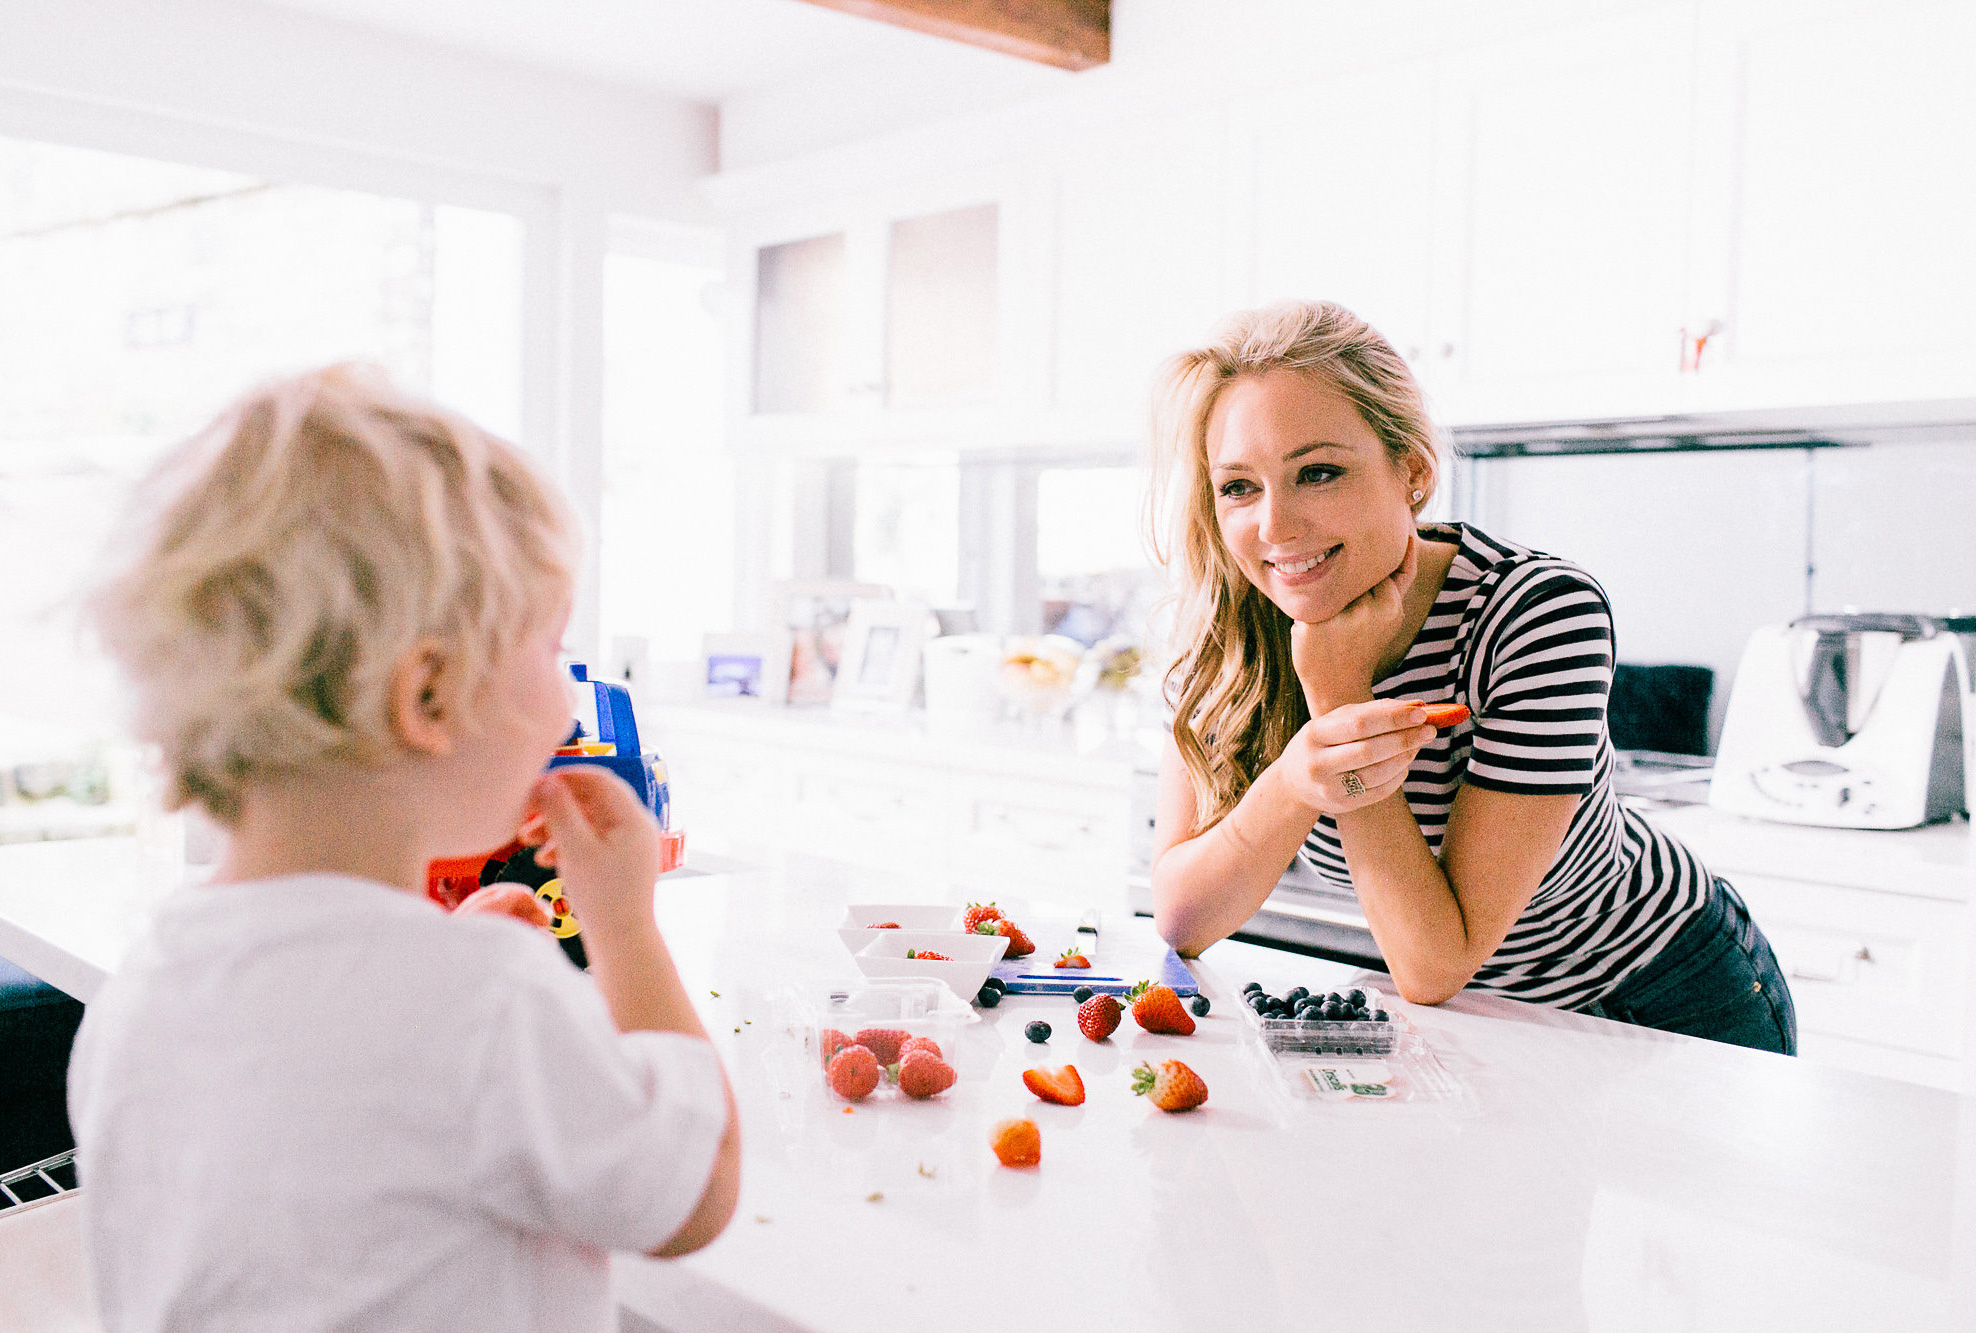 The 3 simple financial rules every mother needs to know